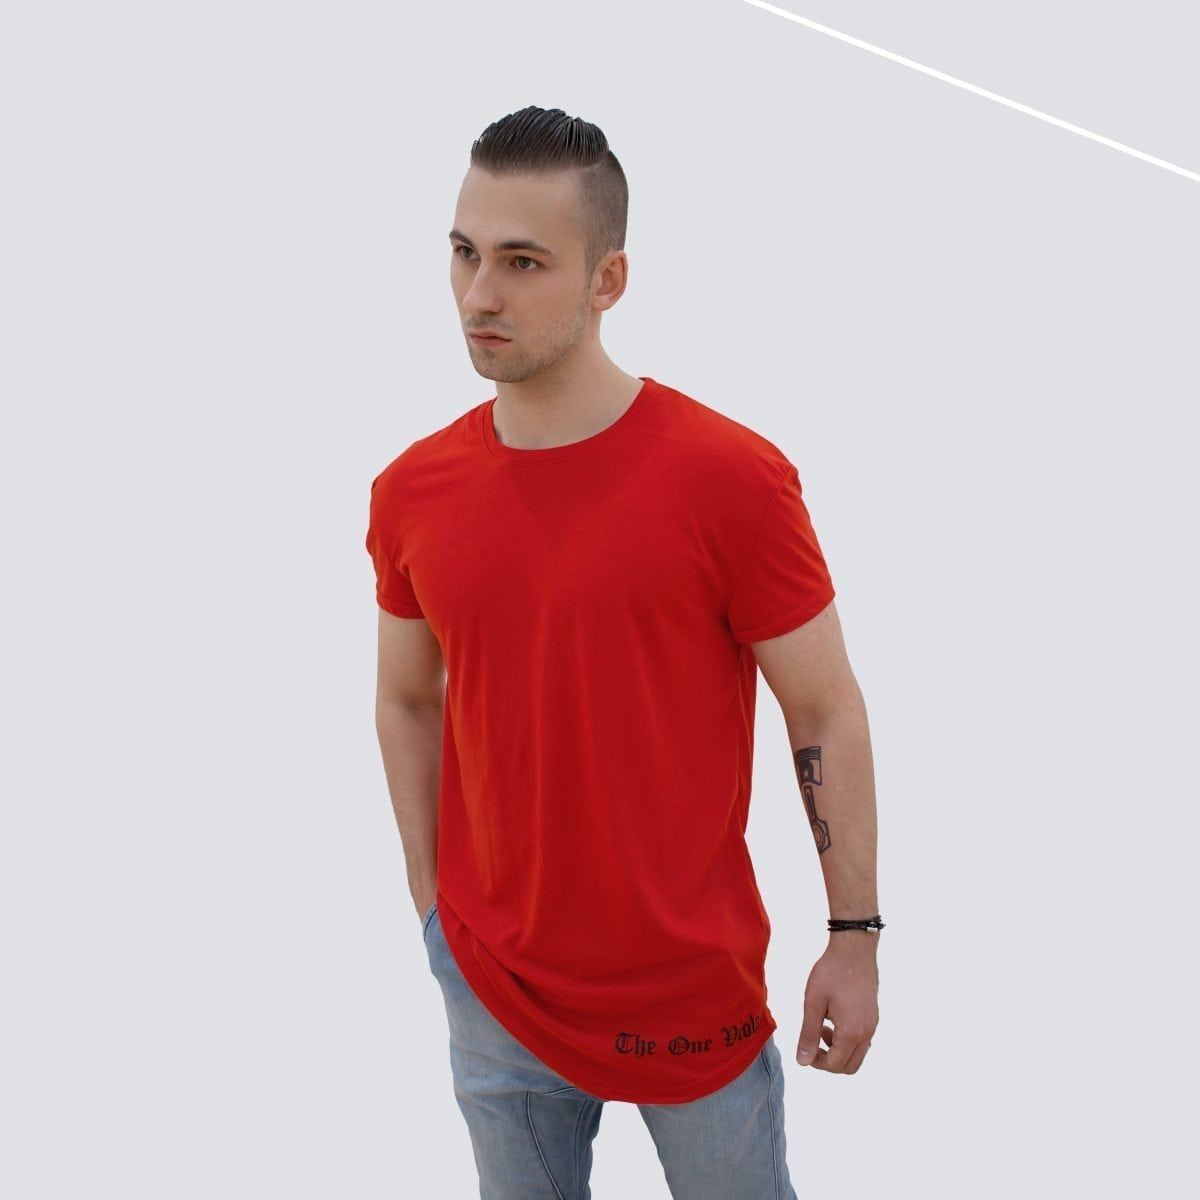 man wearing unisex oversized red streetwear tshirt